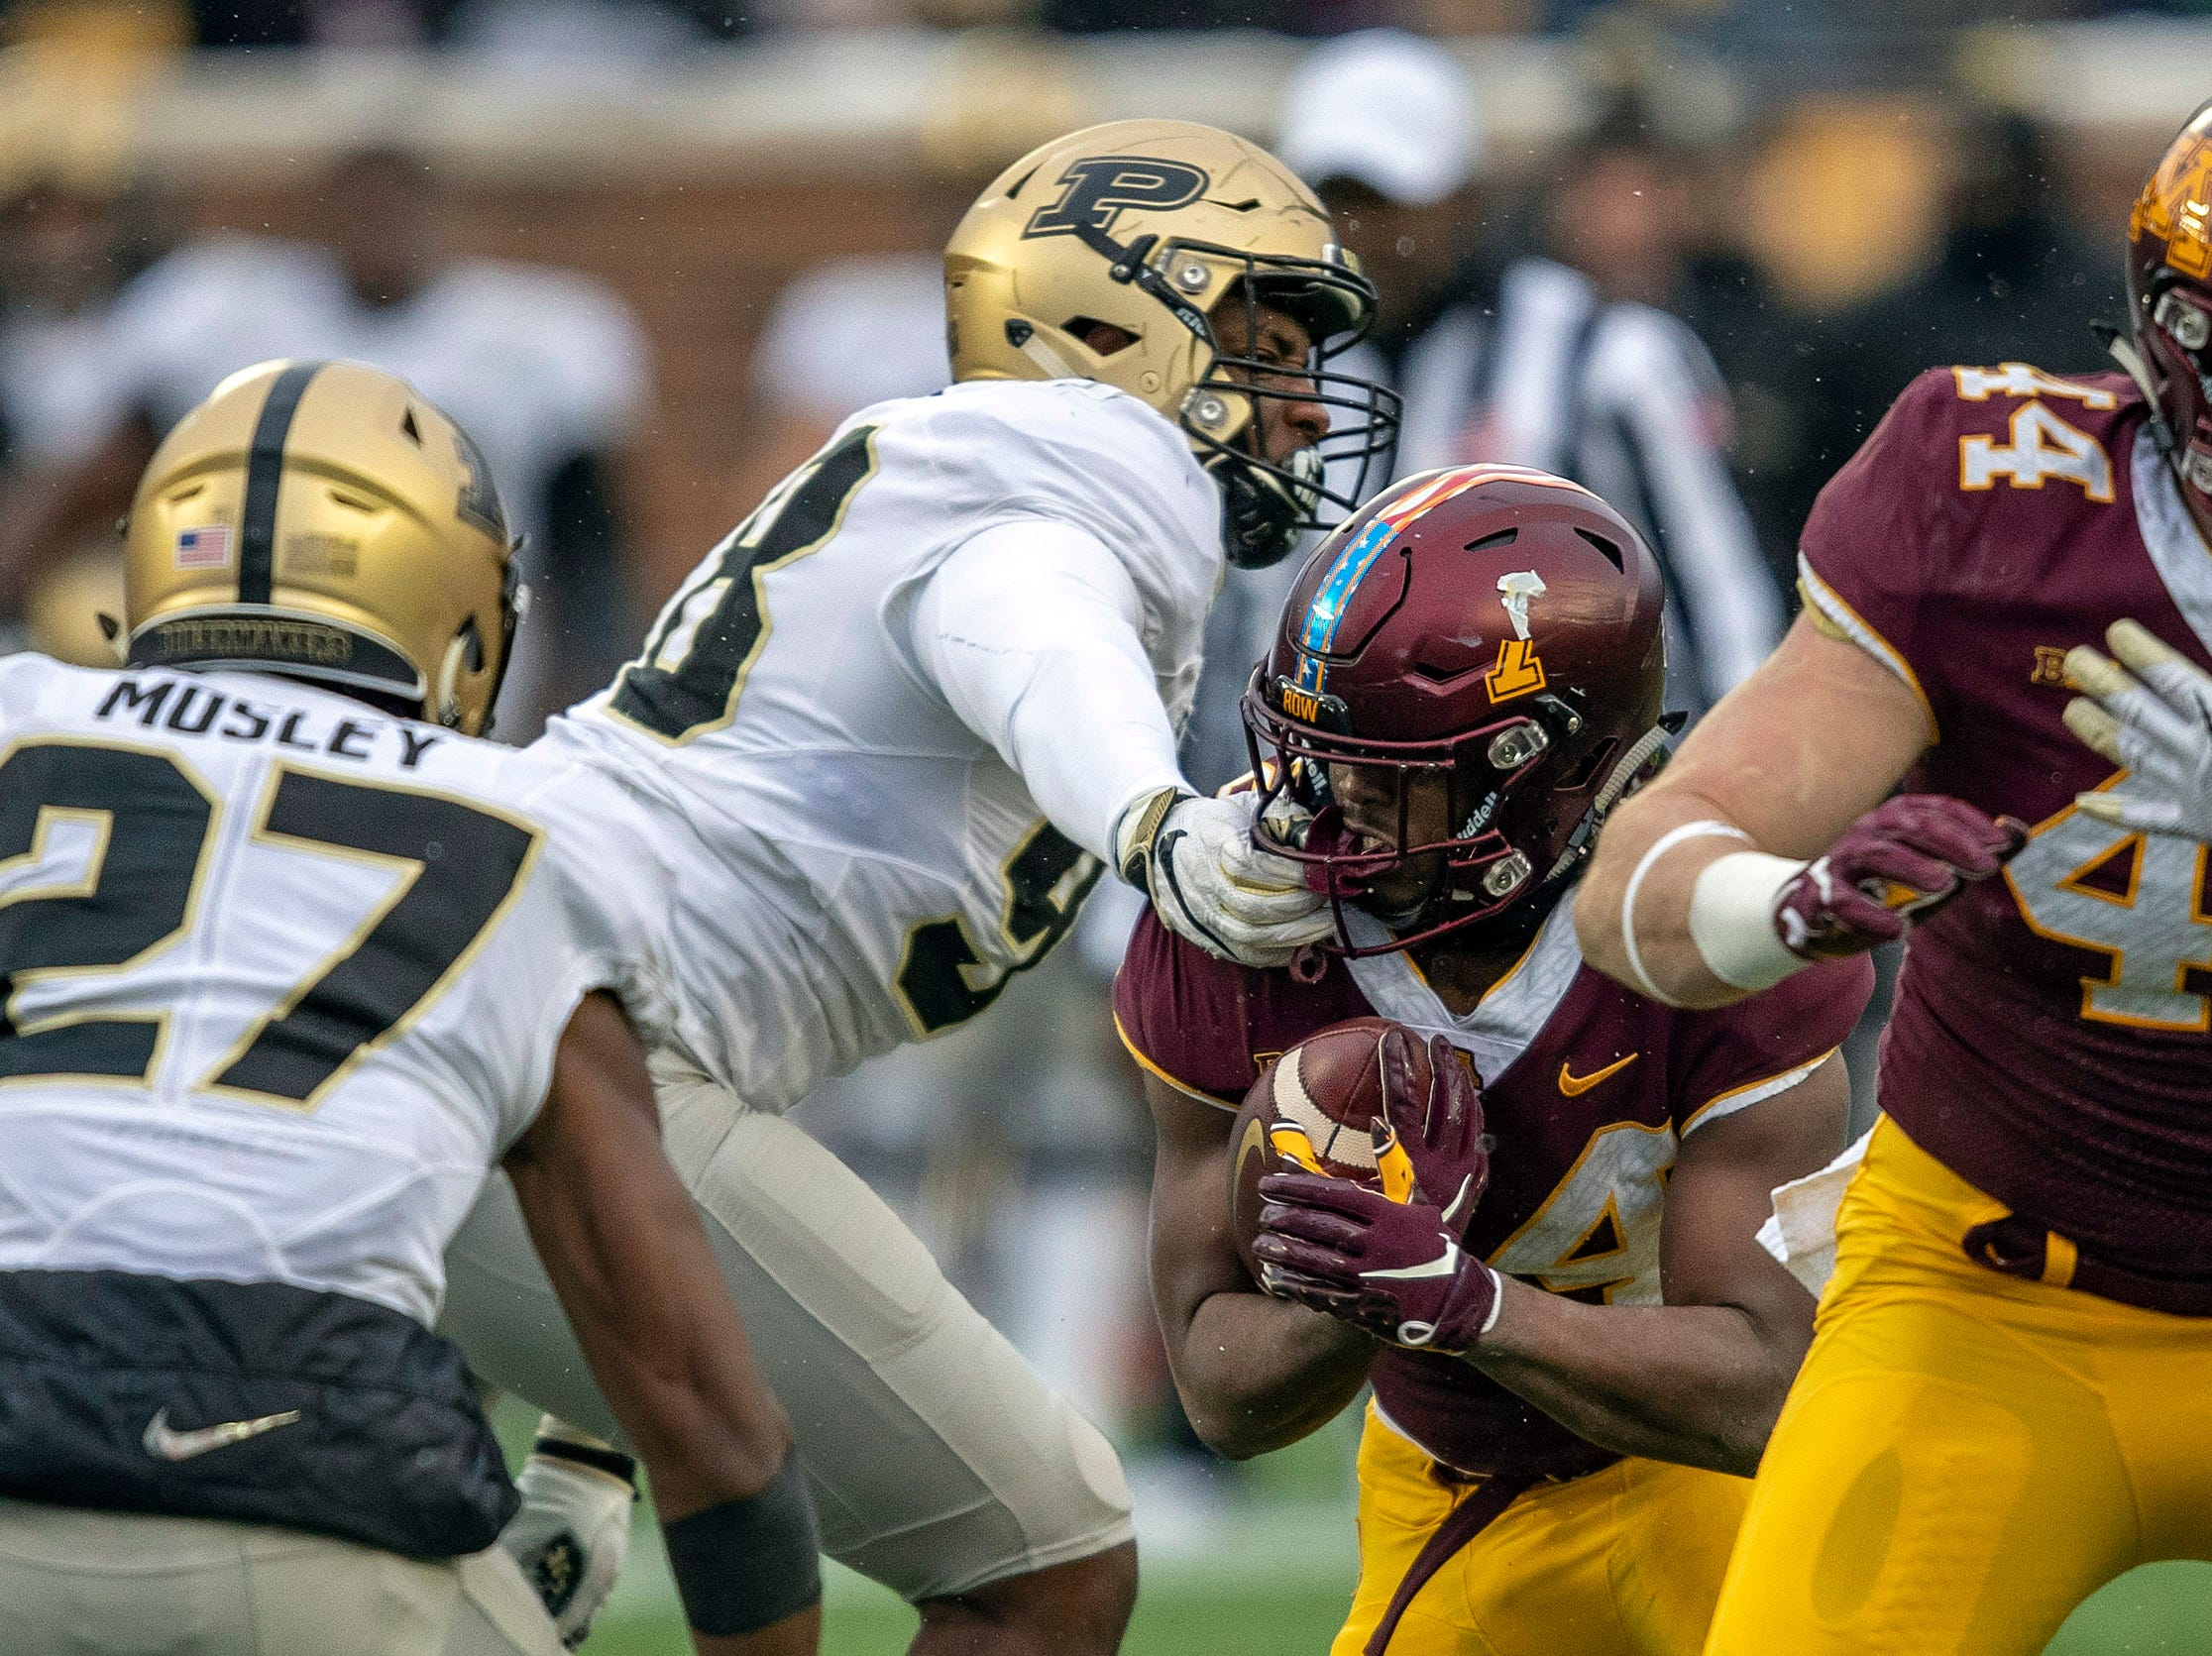 Nov 10, 2018; Minneapolis, MN, USA; Purdue Boilermakers defensive end Kai Higgins (98) grabs Minnesota Golden Gophers running back Mohamed Ibrahim (24) face mask during the first half at TCF Bank Stadium. Mandatory Credit: Jesse Johnson-USA TODAY Sports